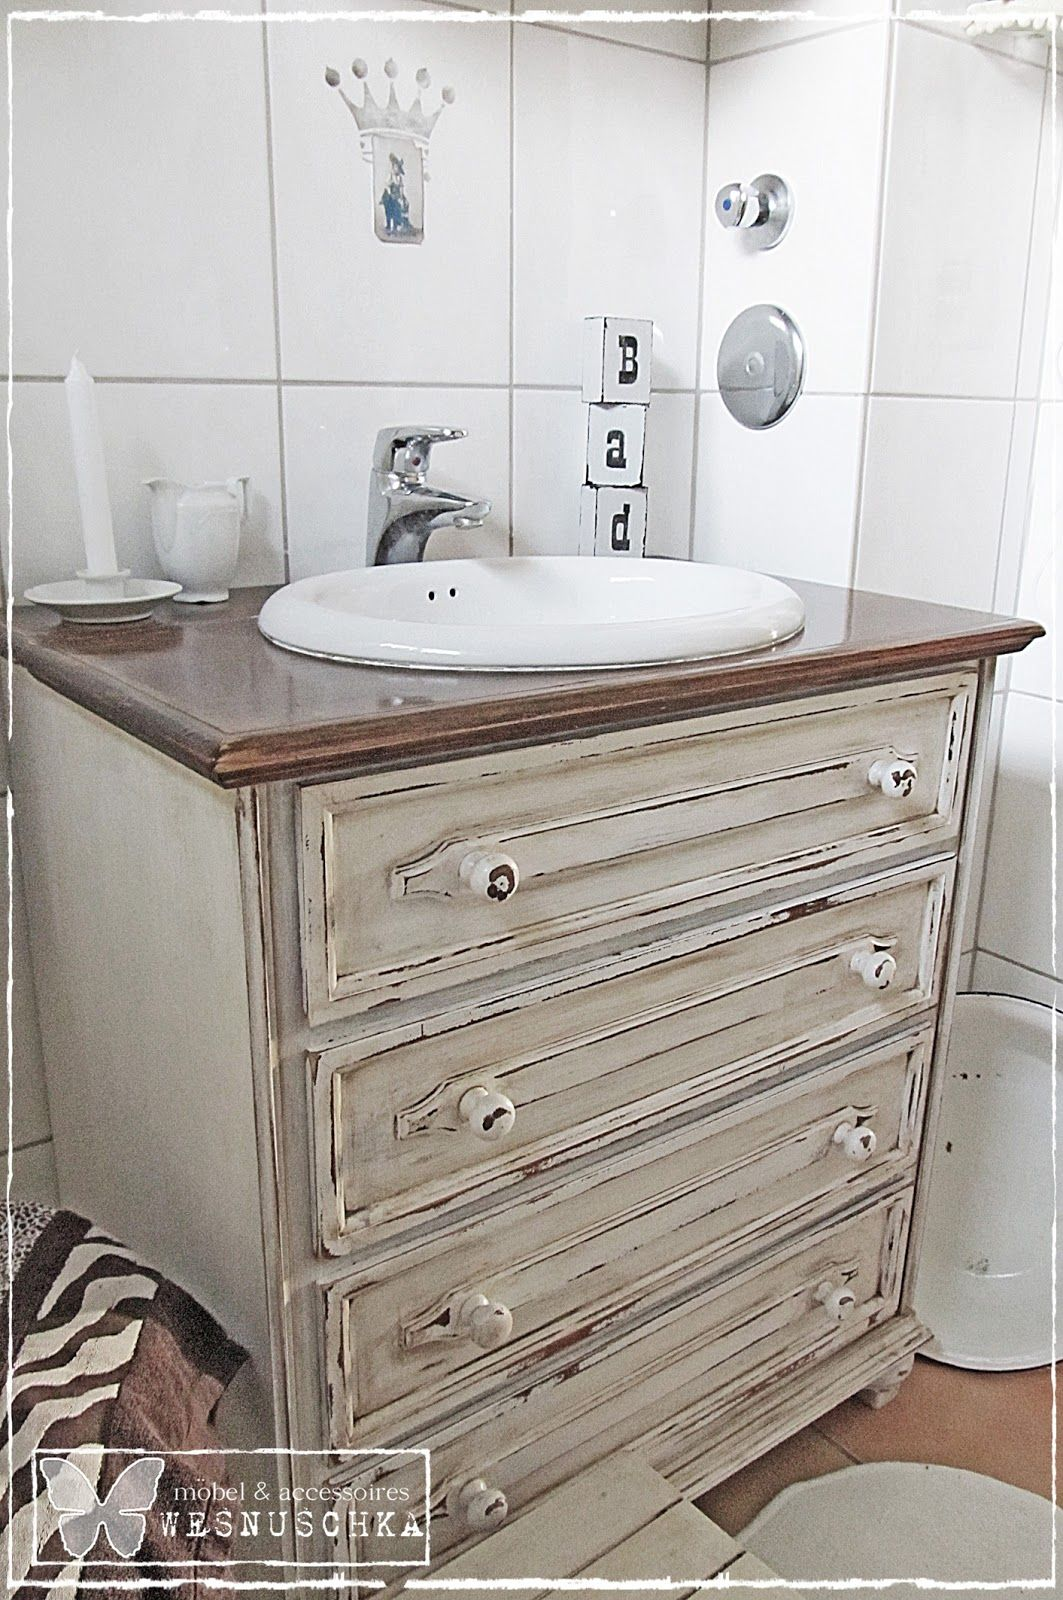 self-made sink | DIY Ideas | Pinterest | Waschtisch, Shabby und ...